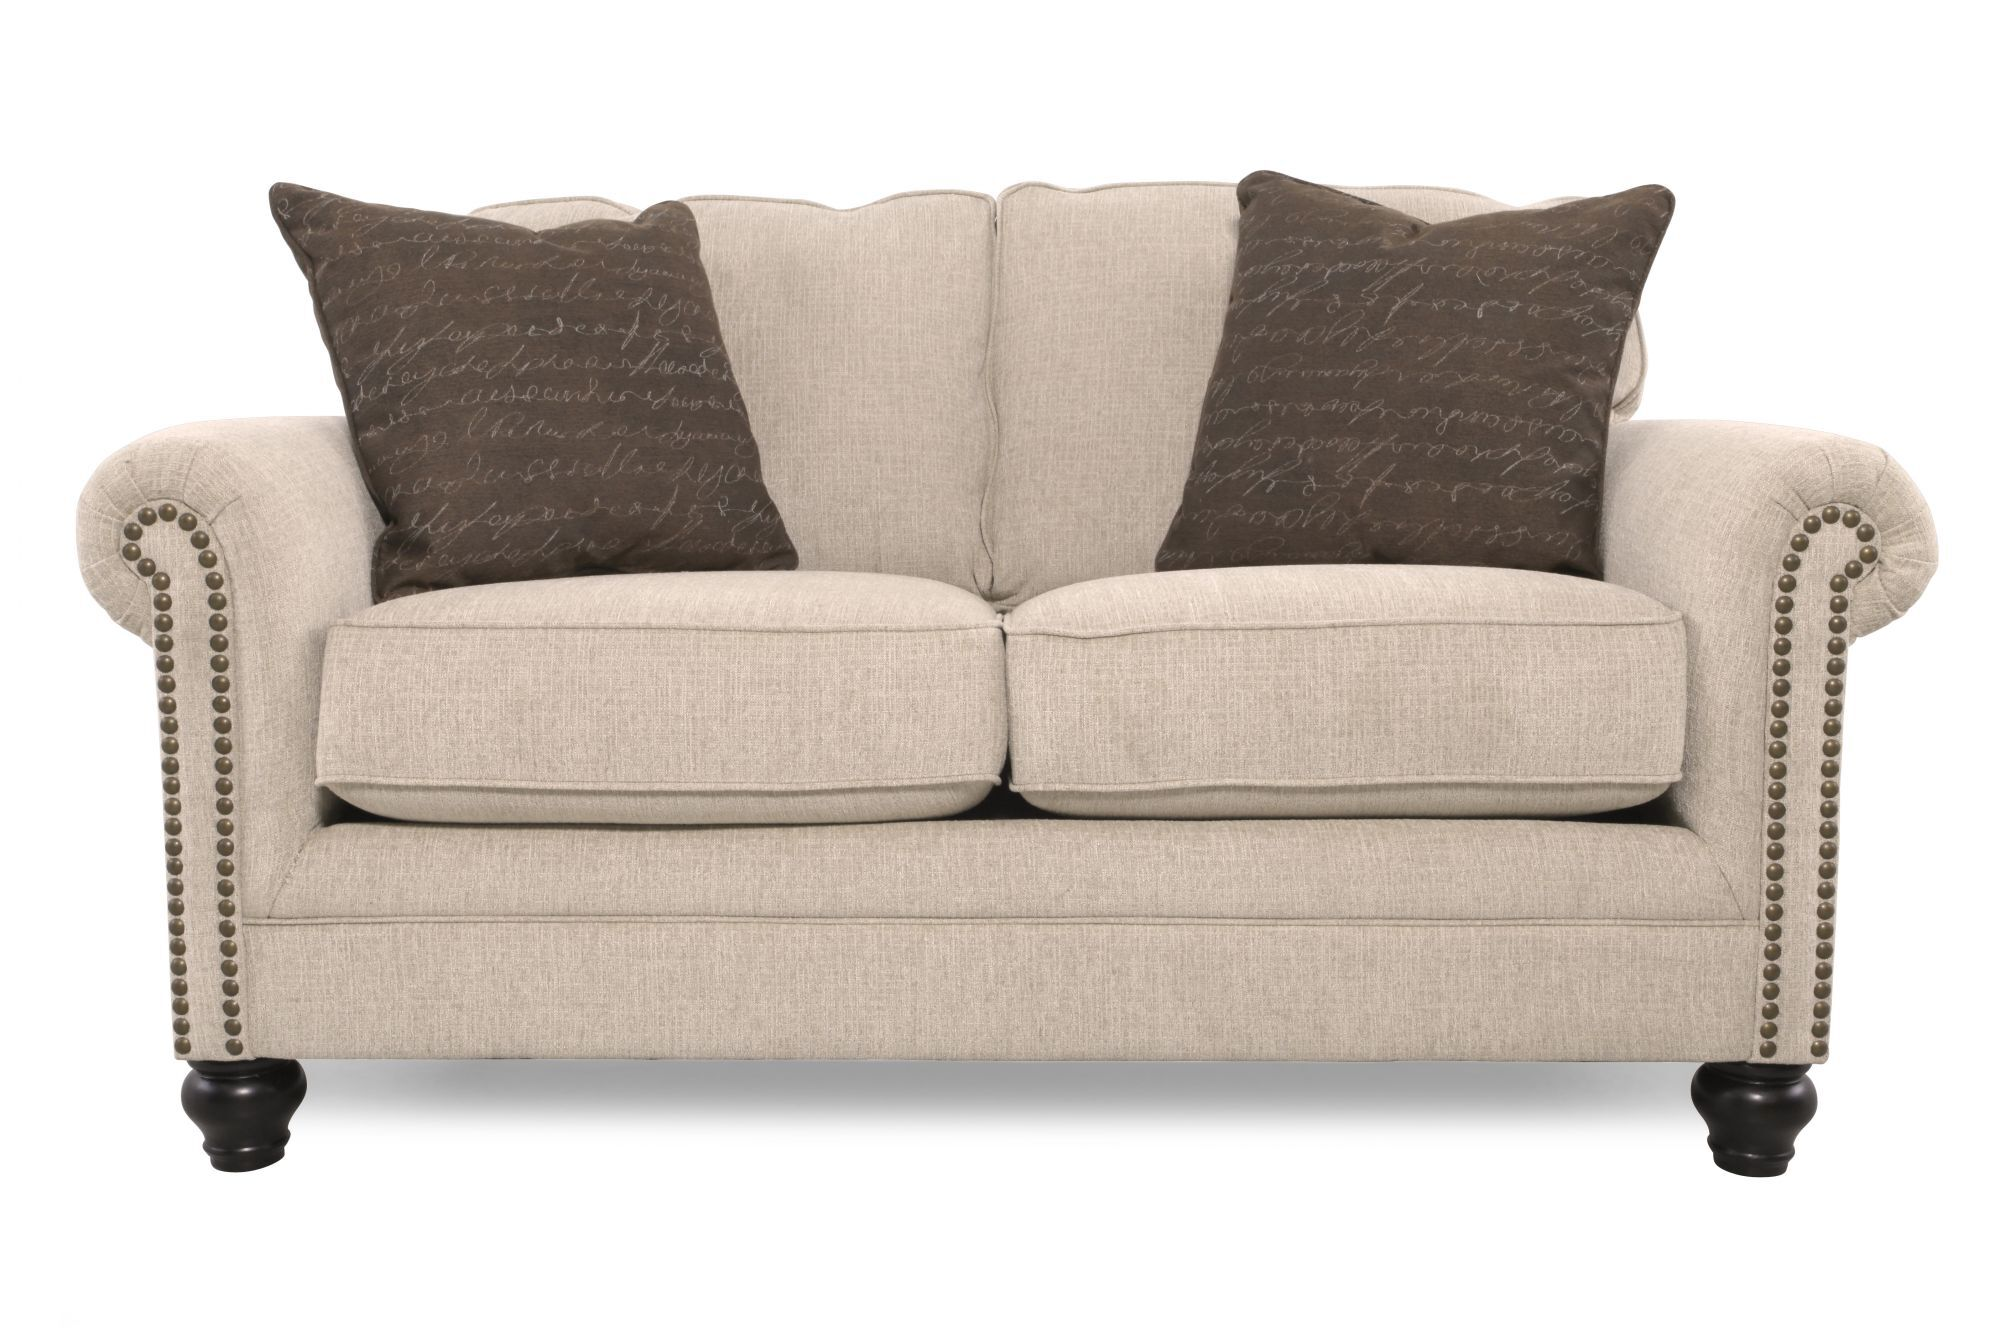 milari sofa ashley furniture 2 seater gumtree sydney linen loveseat mathis brothers